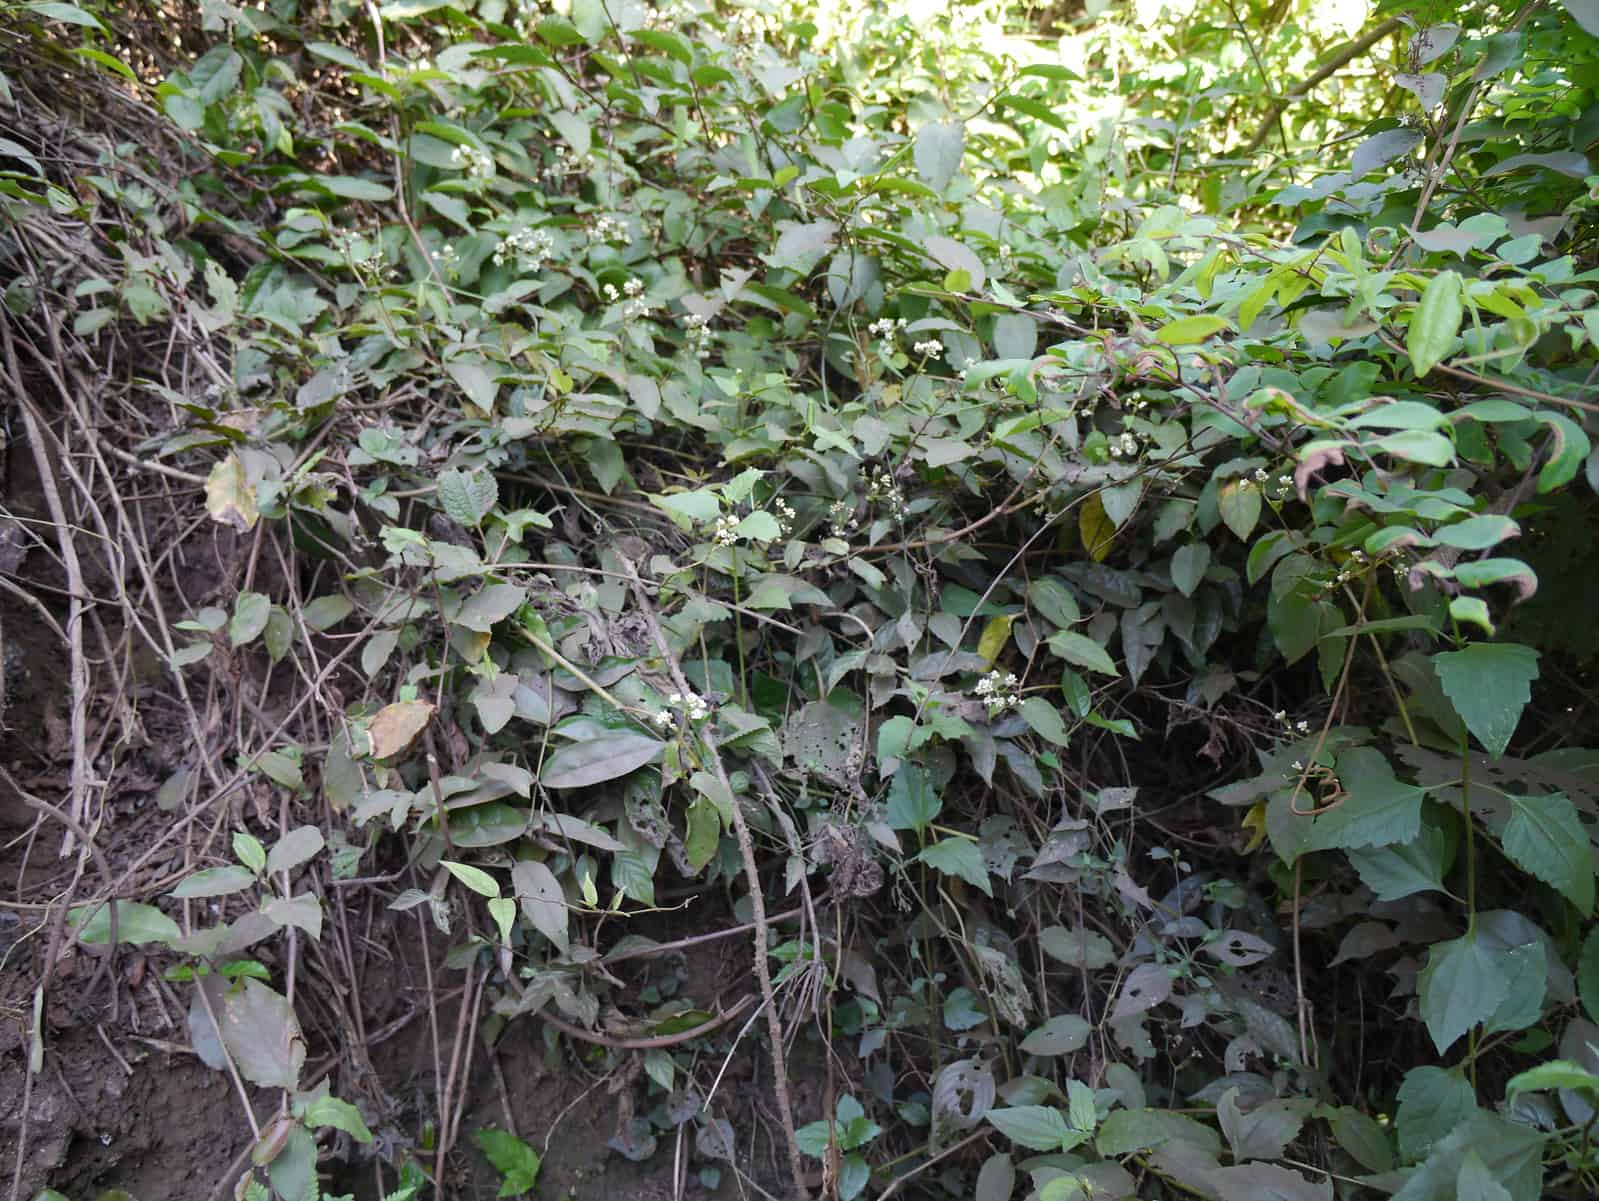 What do you think? Workers dig up Chinese knotweed that